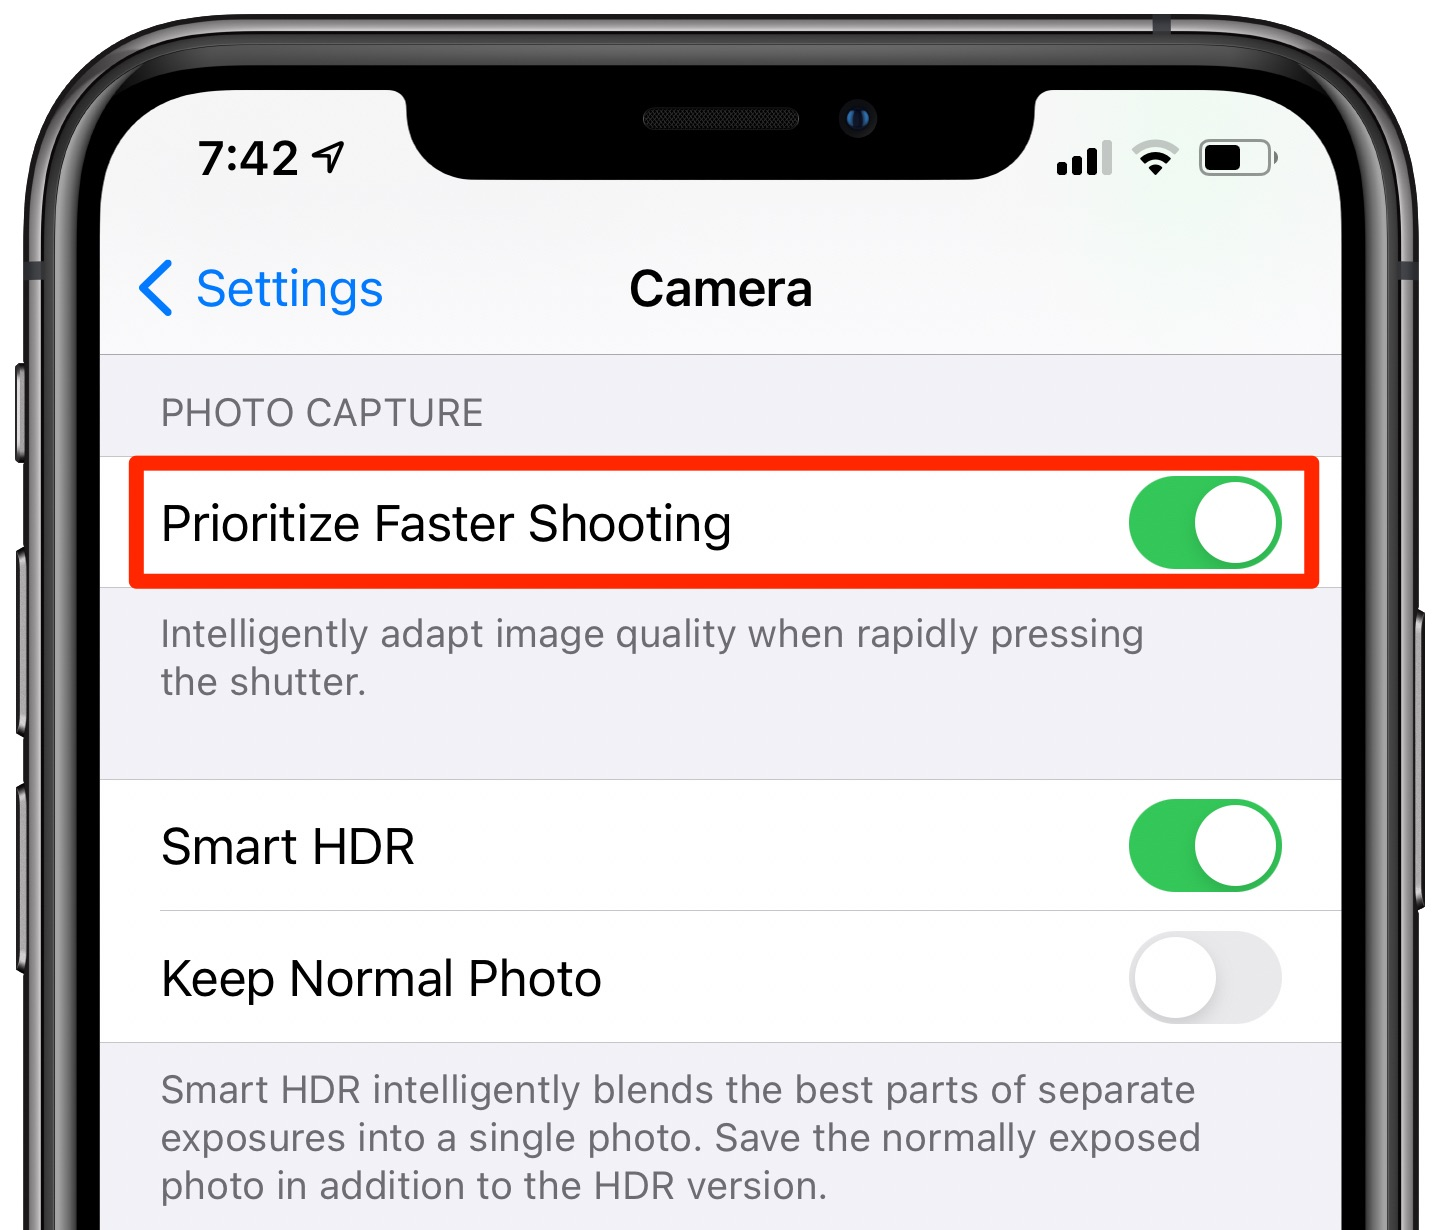 iPhone camera - the Prioritize Faster Shooting option enabled in Settings